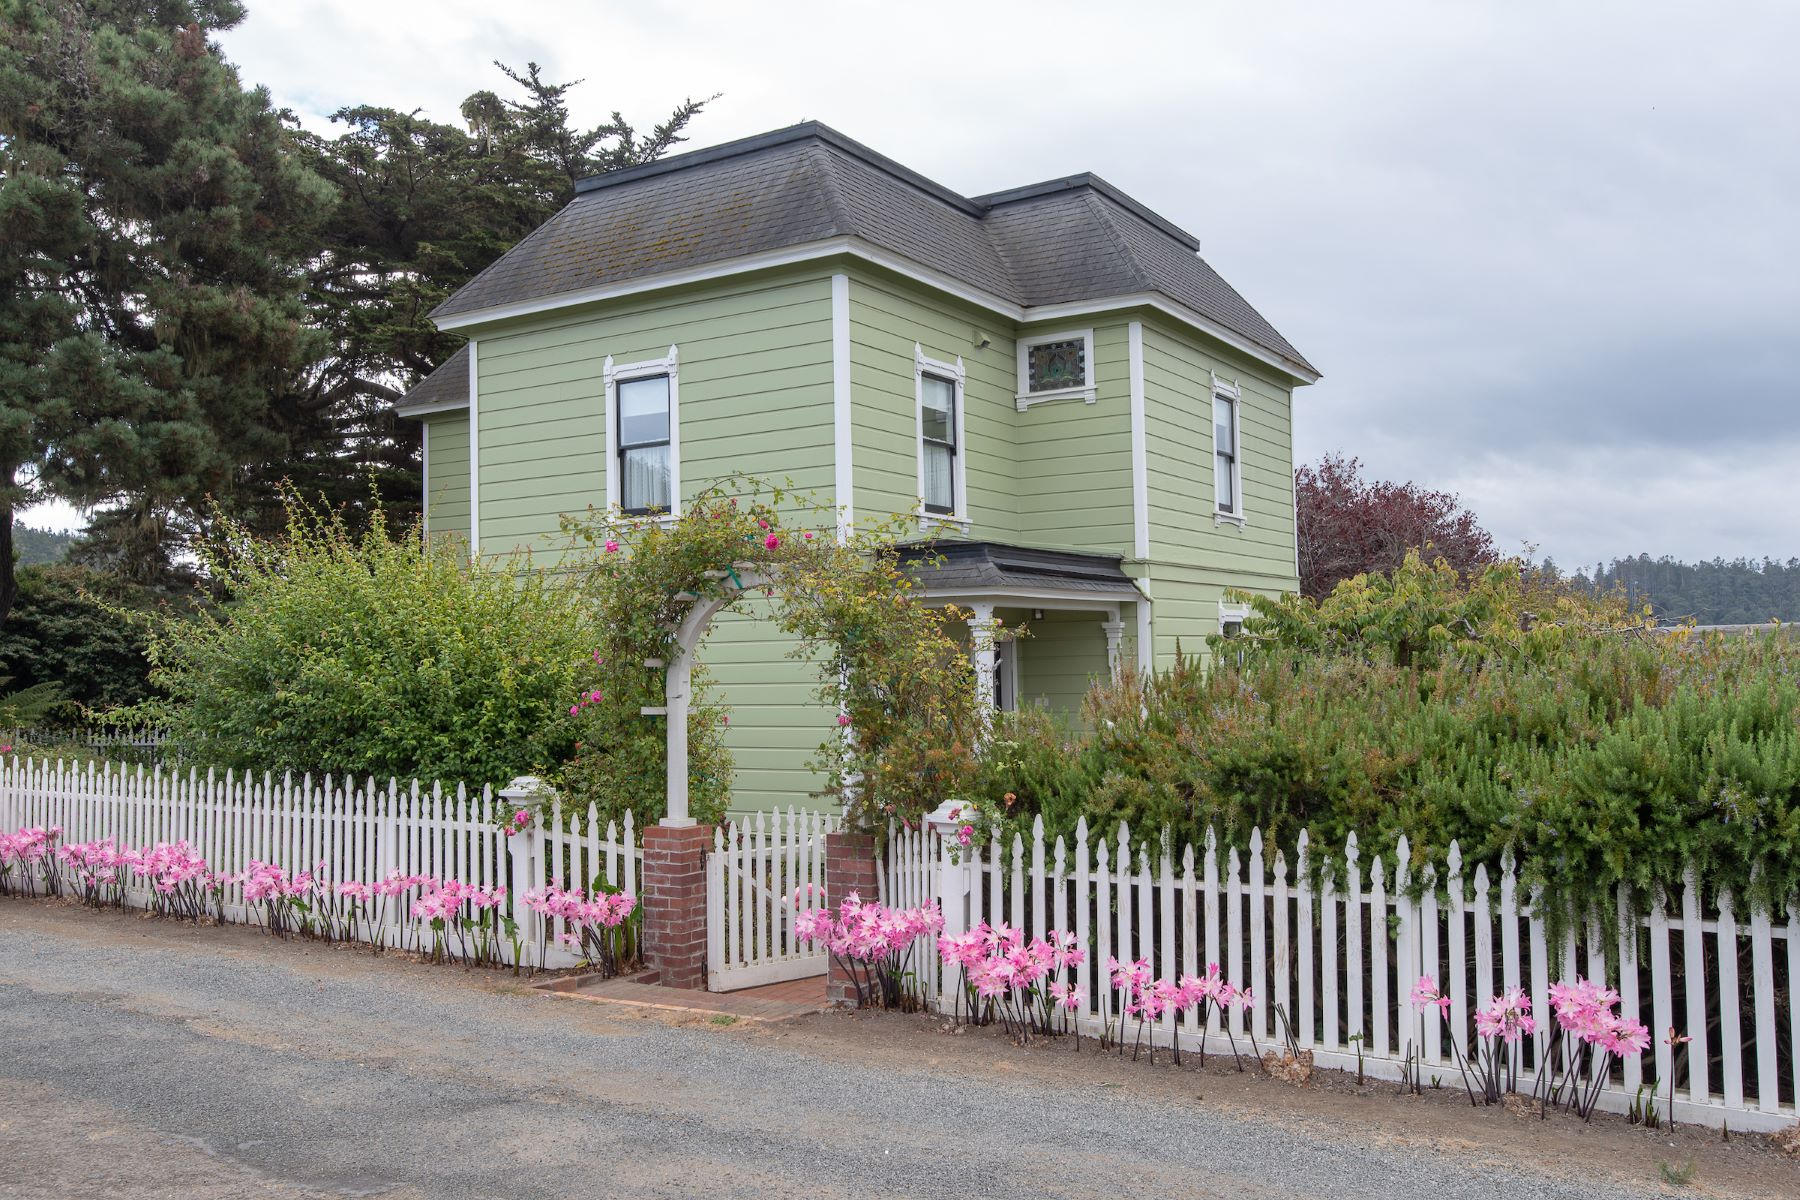 Single Family Home for Sale at Village Elegance 44901 Pine Street Mendocino, California 95460 United States